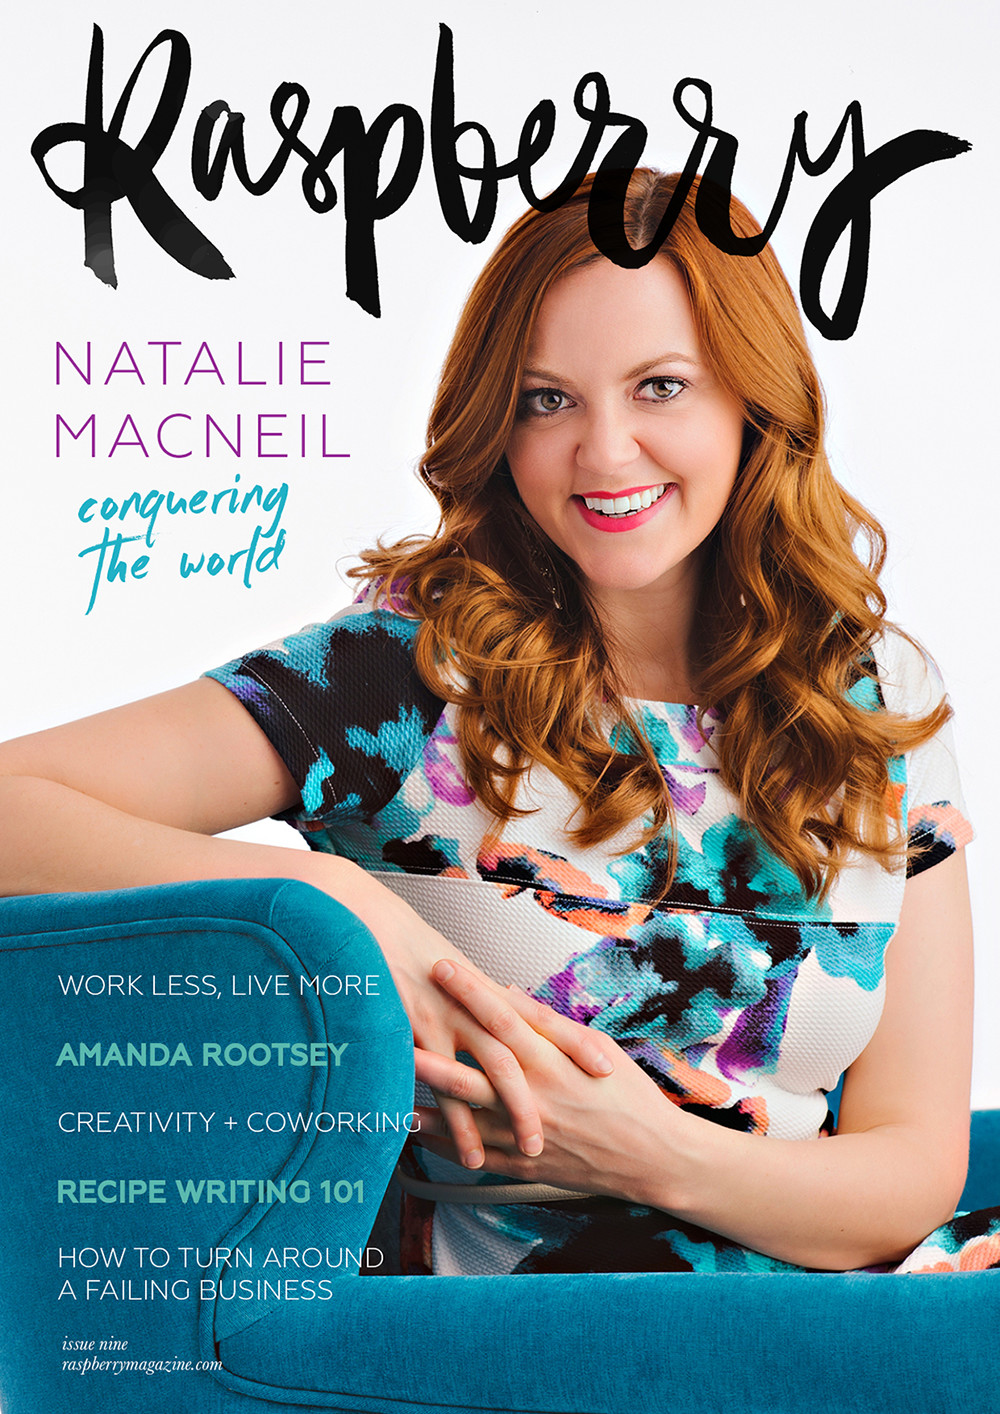 ISSUE NINE ( read online here )   COVER STORY // The effervescent and enthusiastic Emmy Award-winning entrepreneur, Natalie MacNeil!   How to work less and enjoy your business more,  by Charlie Kingsland-Barrow.   4 mindset tips to stop comparing yourself to others,  by Cassie Mendoza-Jones.   5 ways to turn around a failing business, by Charlie Kingsland-Barrow.   Find your intuition an use it in your business,  by  Michelle D'Avella.   Raspberry interviews:  Amanda Rootsey.   How coworking allows your creativity to thrive,  by Celeste Mitchell.   Releasing the white-knuckled grip: are you micromanaging your life?  by Laura Carrocci.   How gratitude can help you navigate the online world with ease,  by Chloe Wigan.   Raspberry interviews:  Anna Dower.   Recipe writing 101: a how-to for food bloggers  by Jordanna Levin.   Lessons learned while failing upwards,  by Ceri Kidby-Salom.